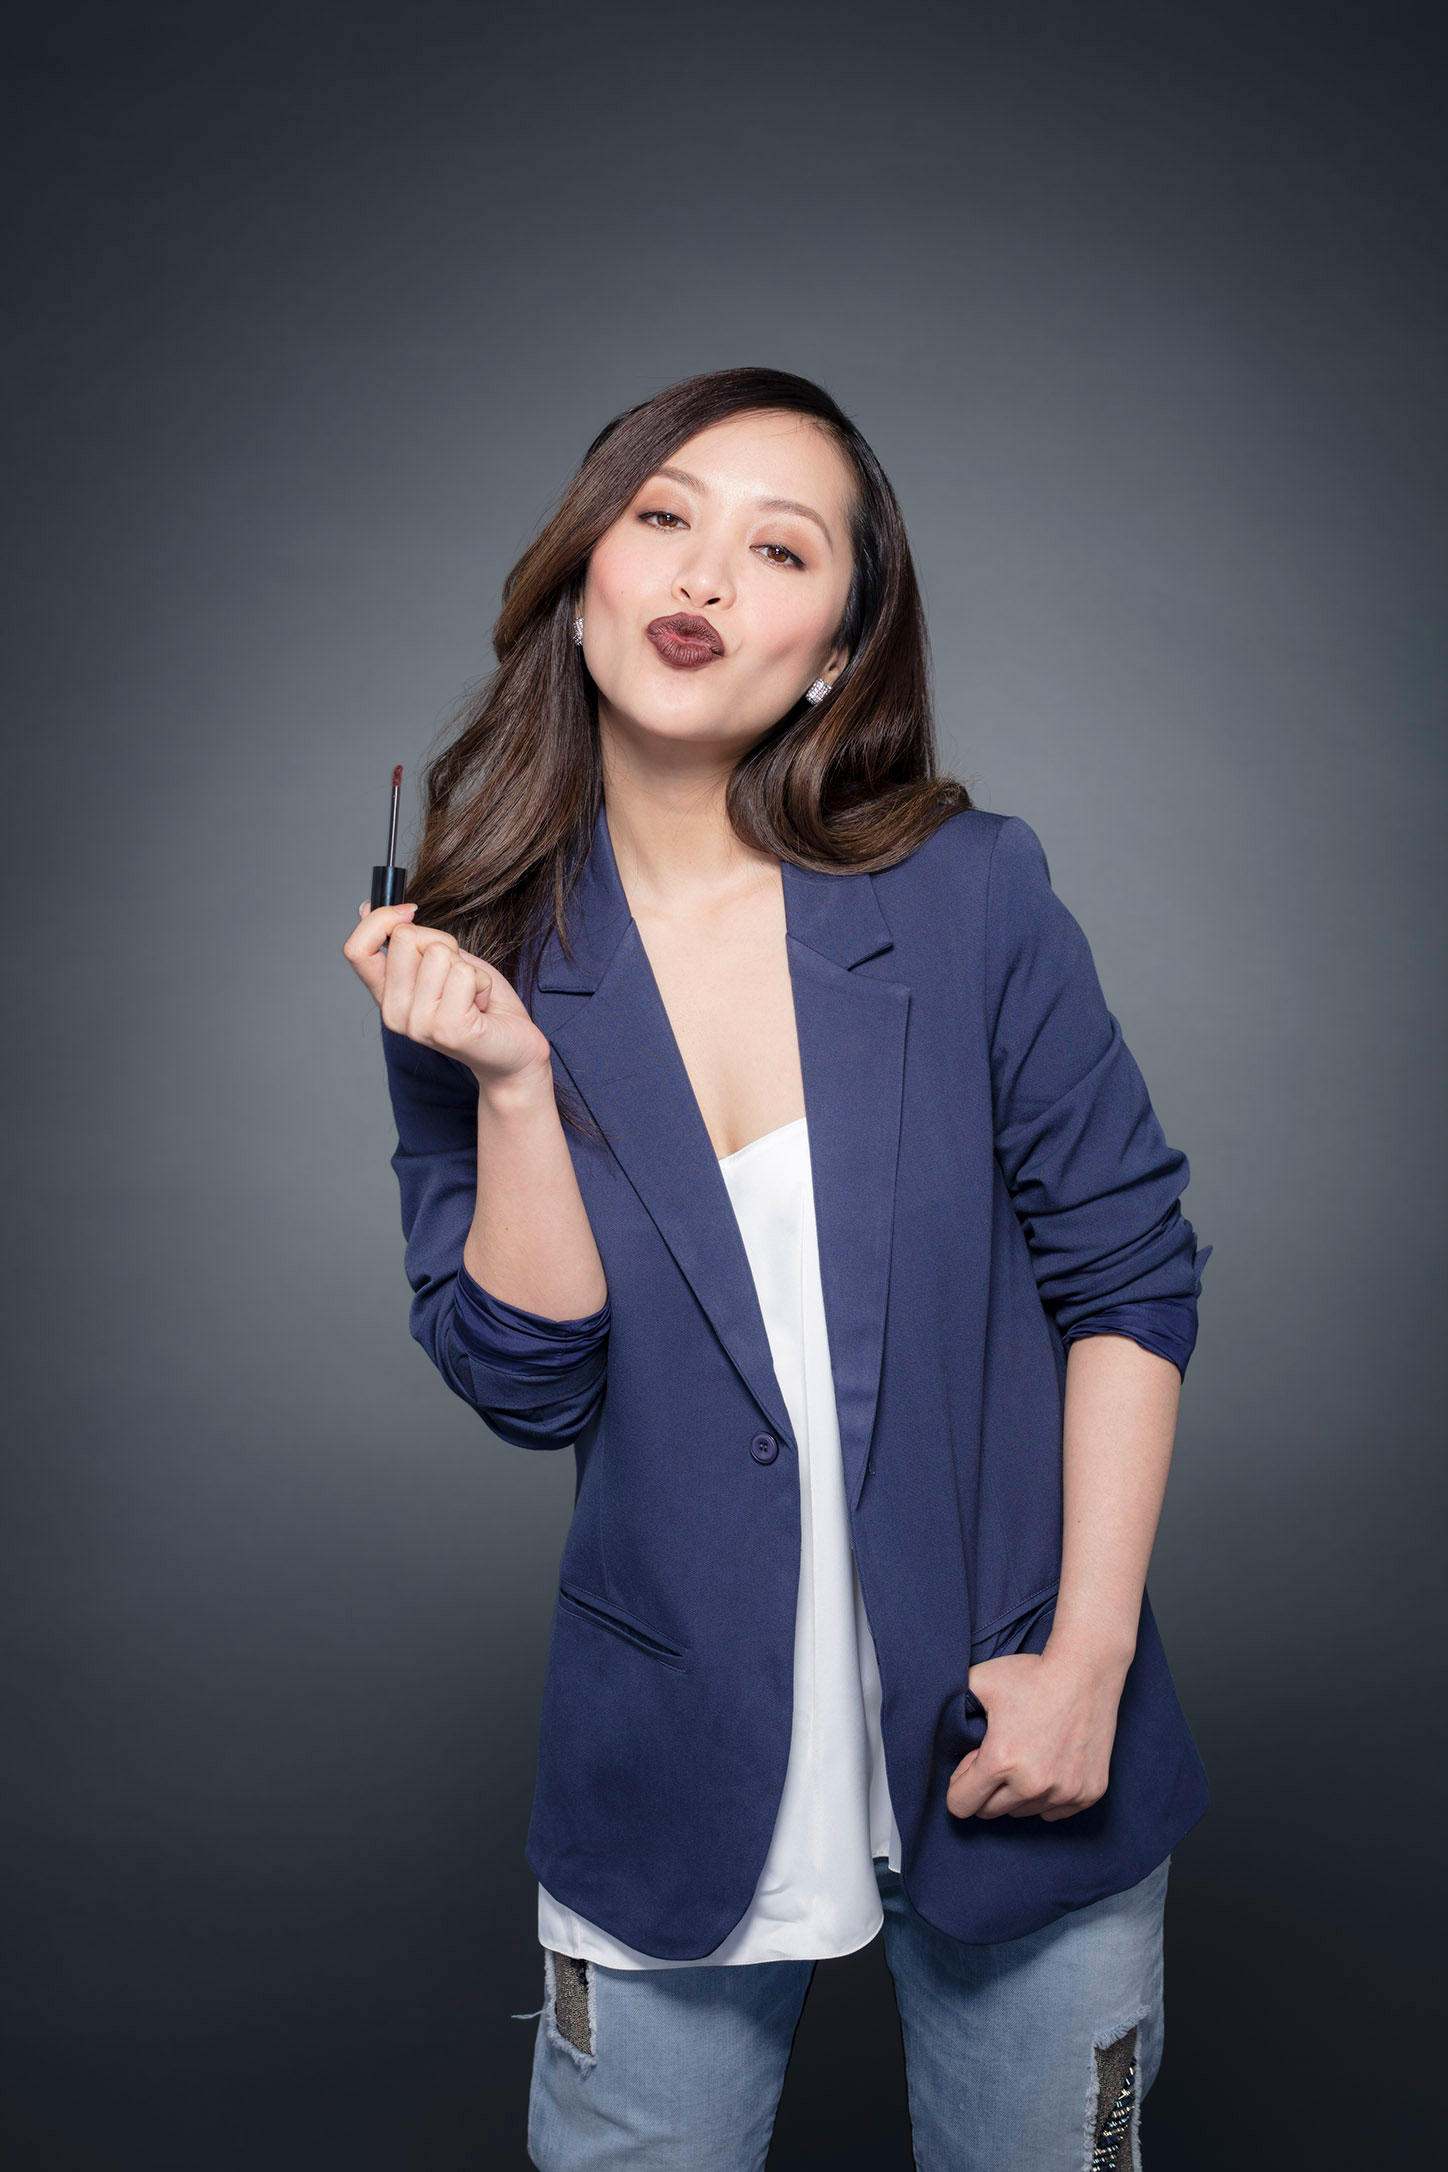 How Michelle Phan Built a $500 Million Beauty Empire